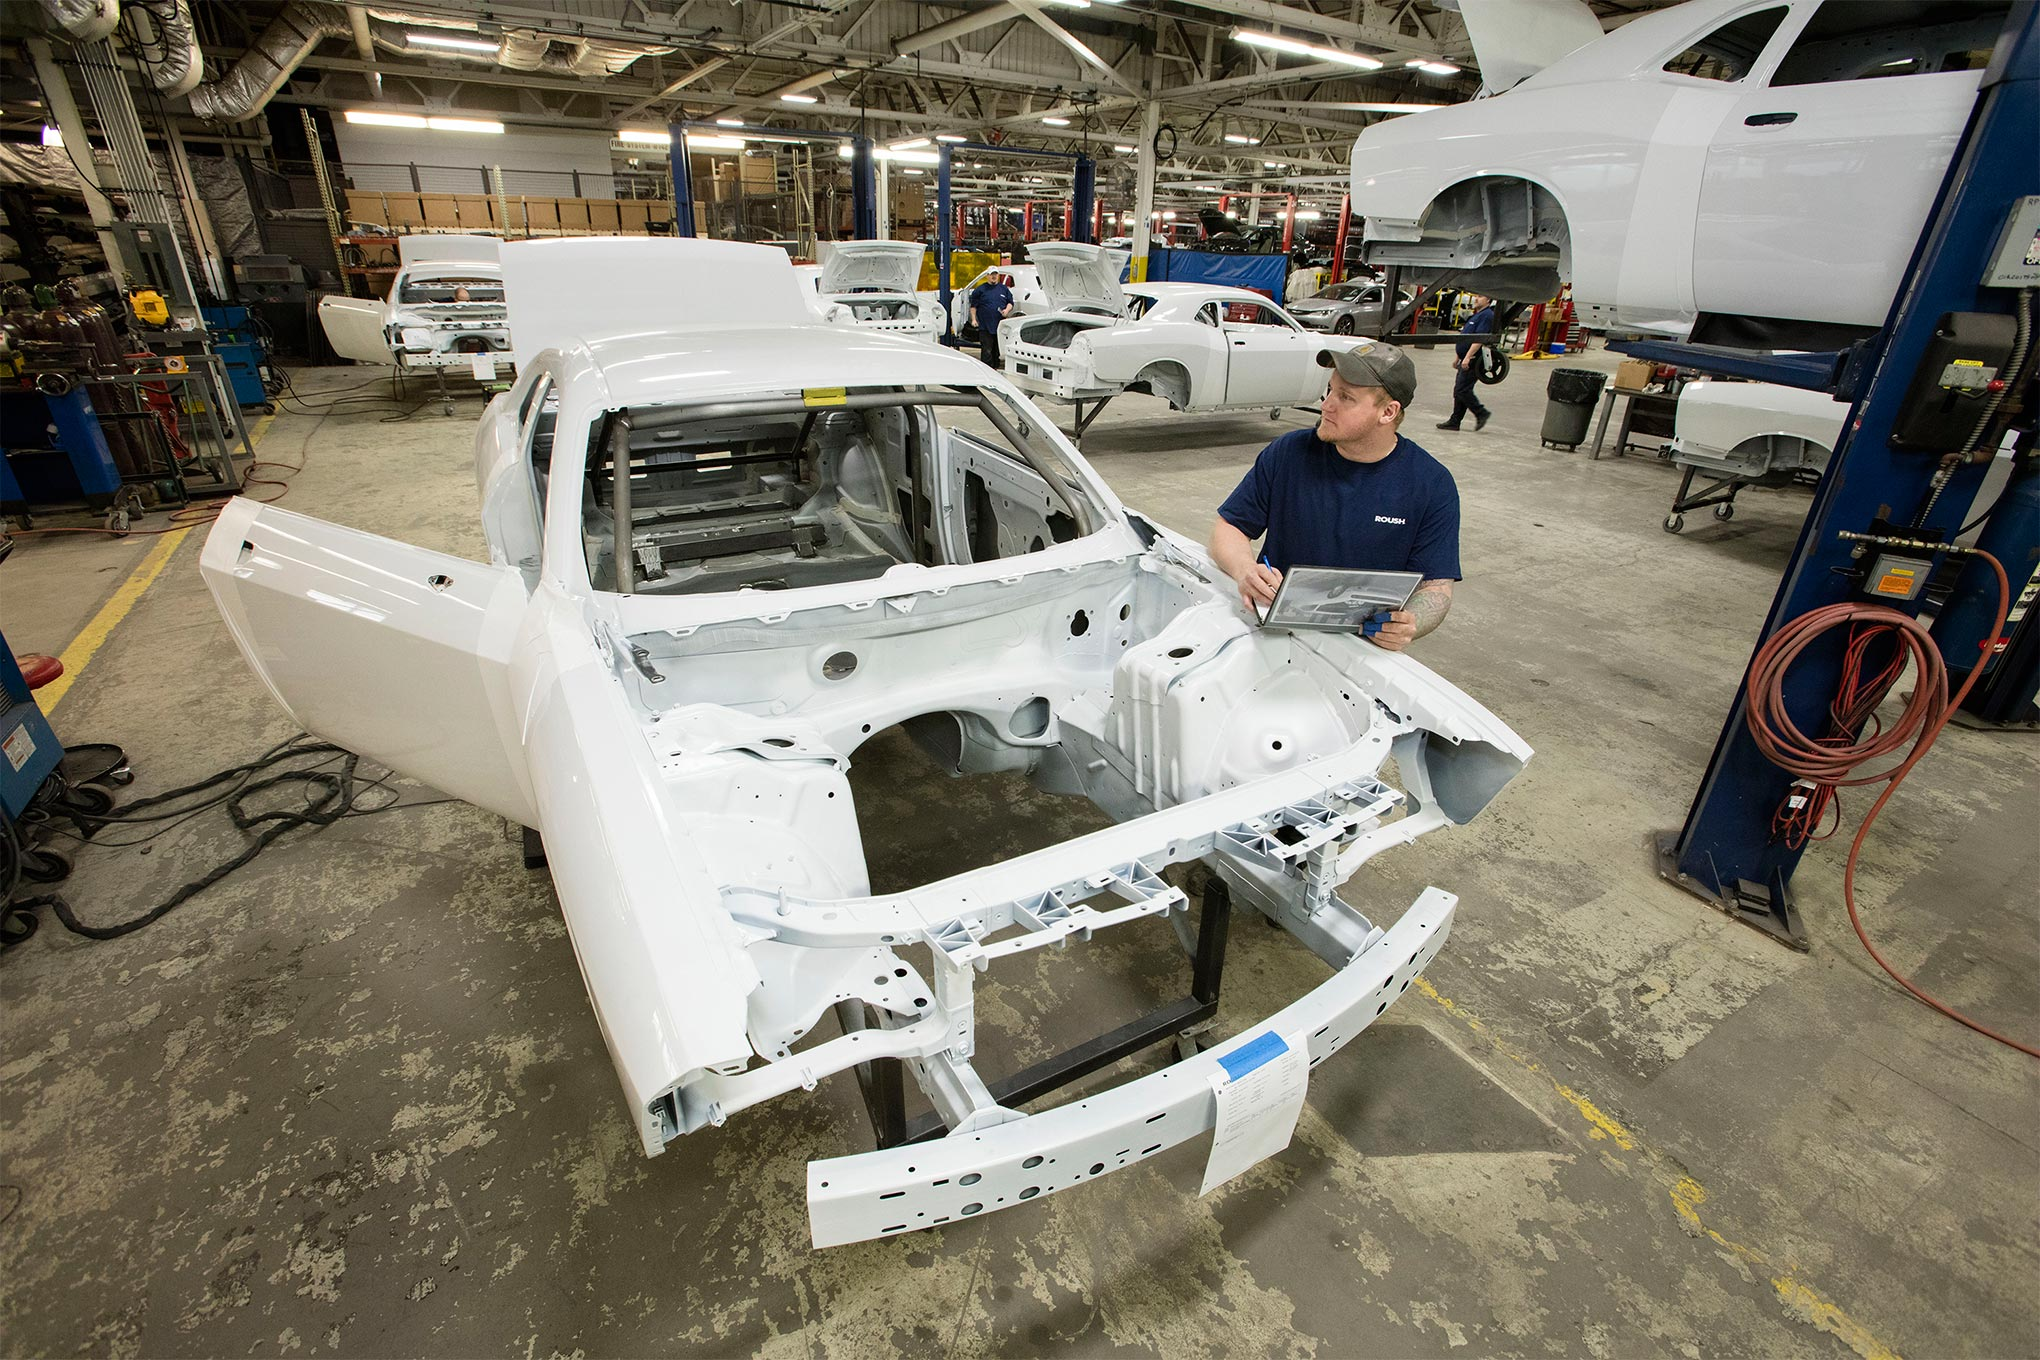 """The Challenger Drag Pak's bodyshell comes from the Brampton Assembly plant painted """"Bright White."""" They get pulled off the line before the sound deadening gets applied and VIN sequencing begins. Usually five to eight bodies a week show up at the Roush Facility in Michigan, which builds the finished Drag Pak cars."""